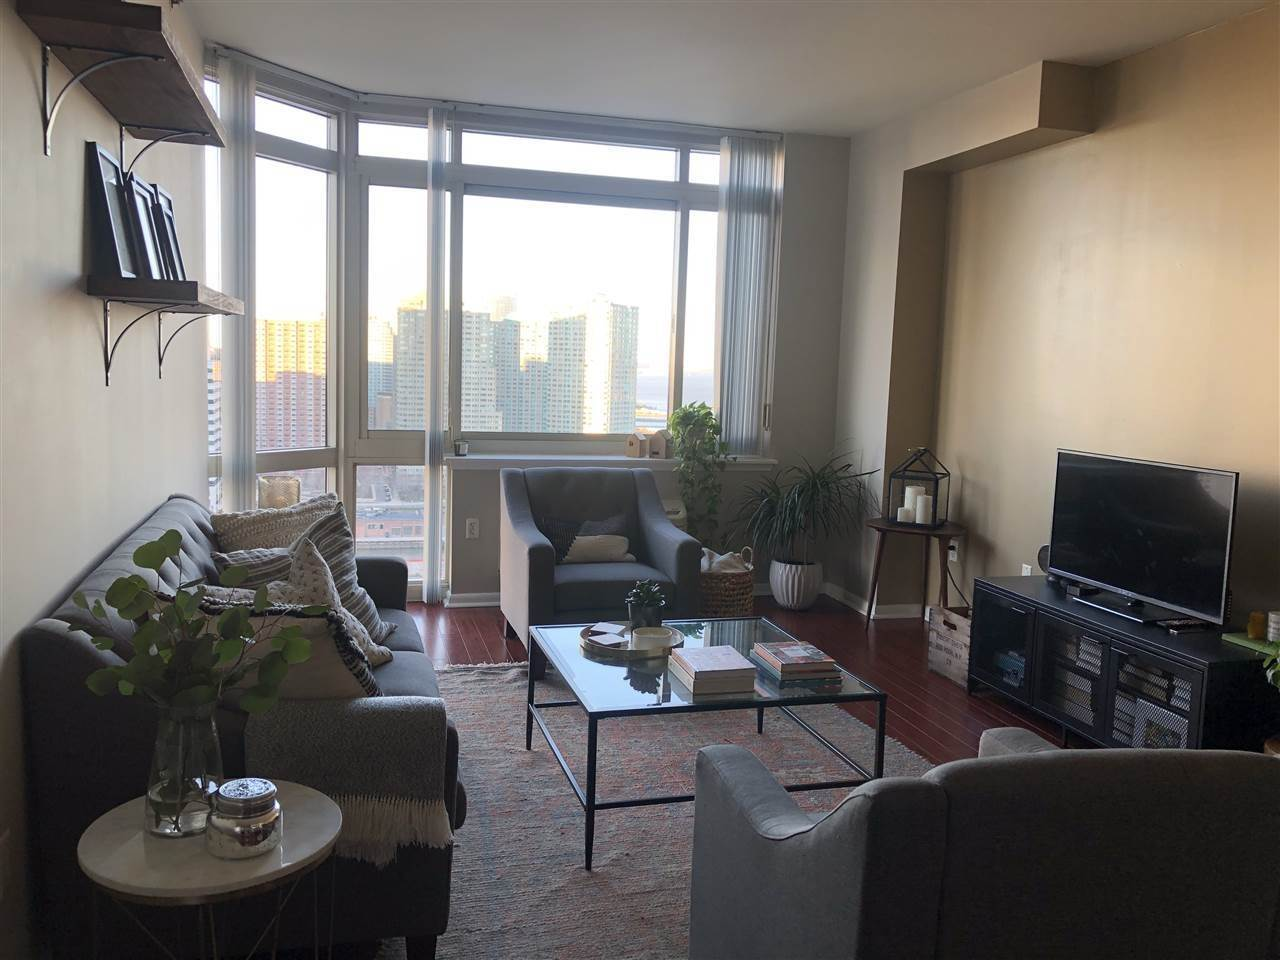 7. Single Family Home for Rent at 20 2ND STREET #PH05 Jersey City, New Jersey, 07302 United States